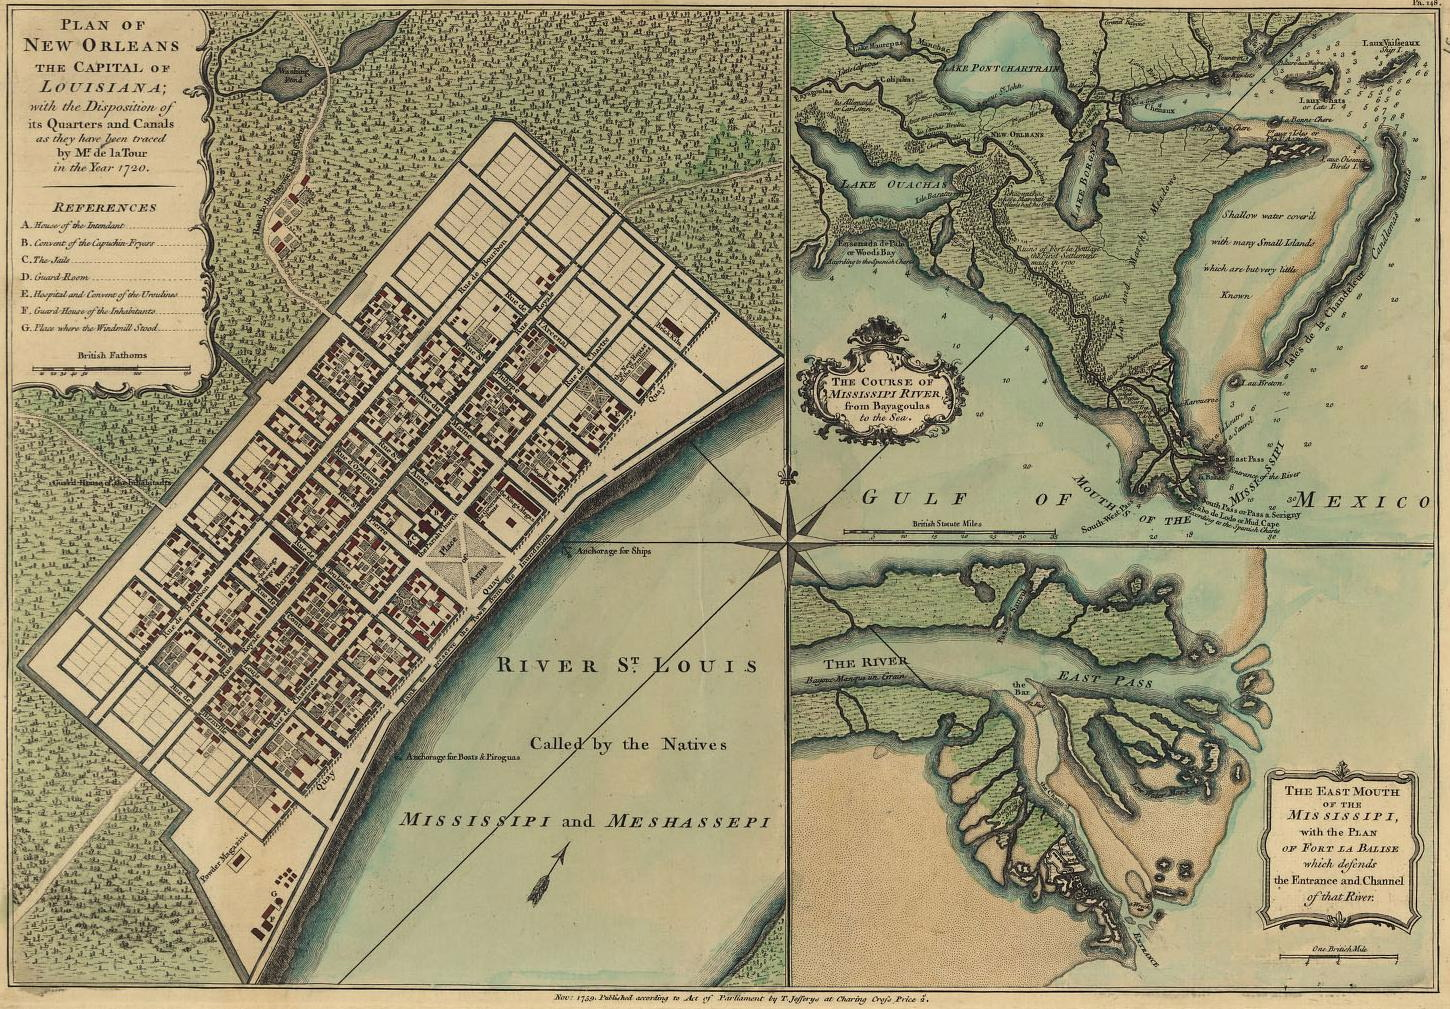 File:New Orleans de la Tour map 1720 1759.jpg